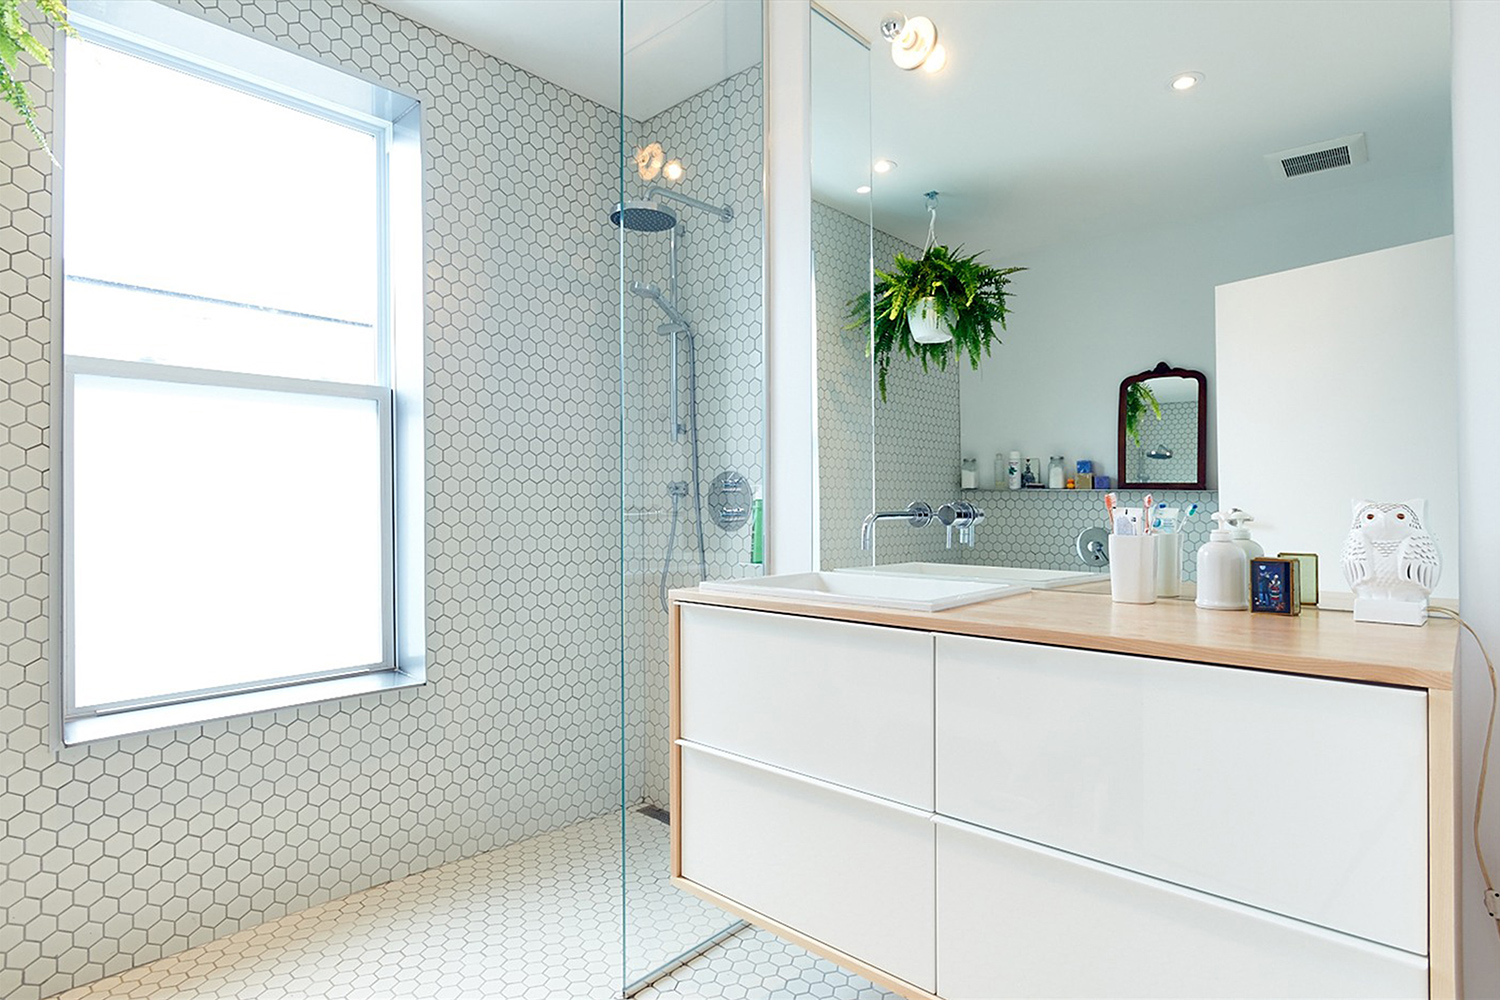 Renovation of bathroom. Floor and octagonal white mosaic wall. Full height custom mirror with white vanity cabinet. The cherry wood counter surrounds the furniture hanging on the wall